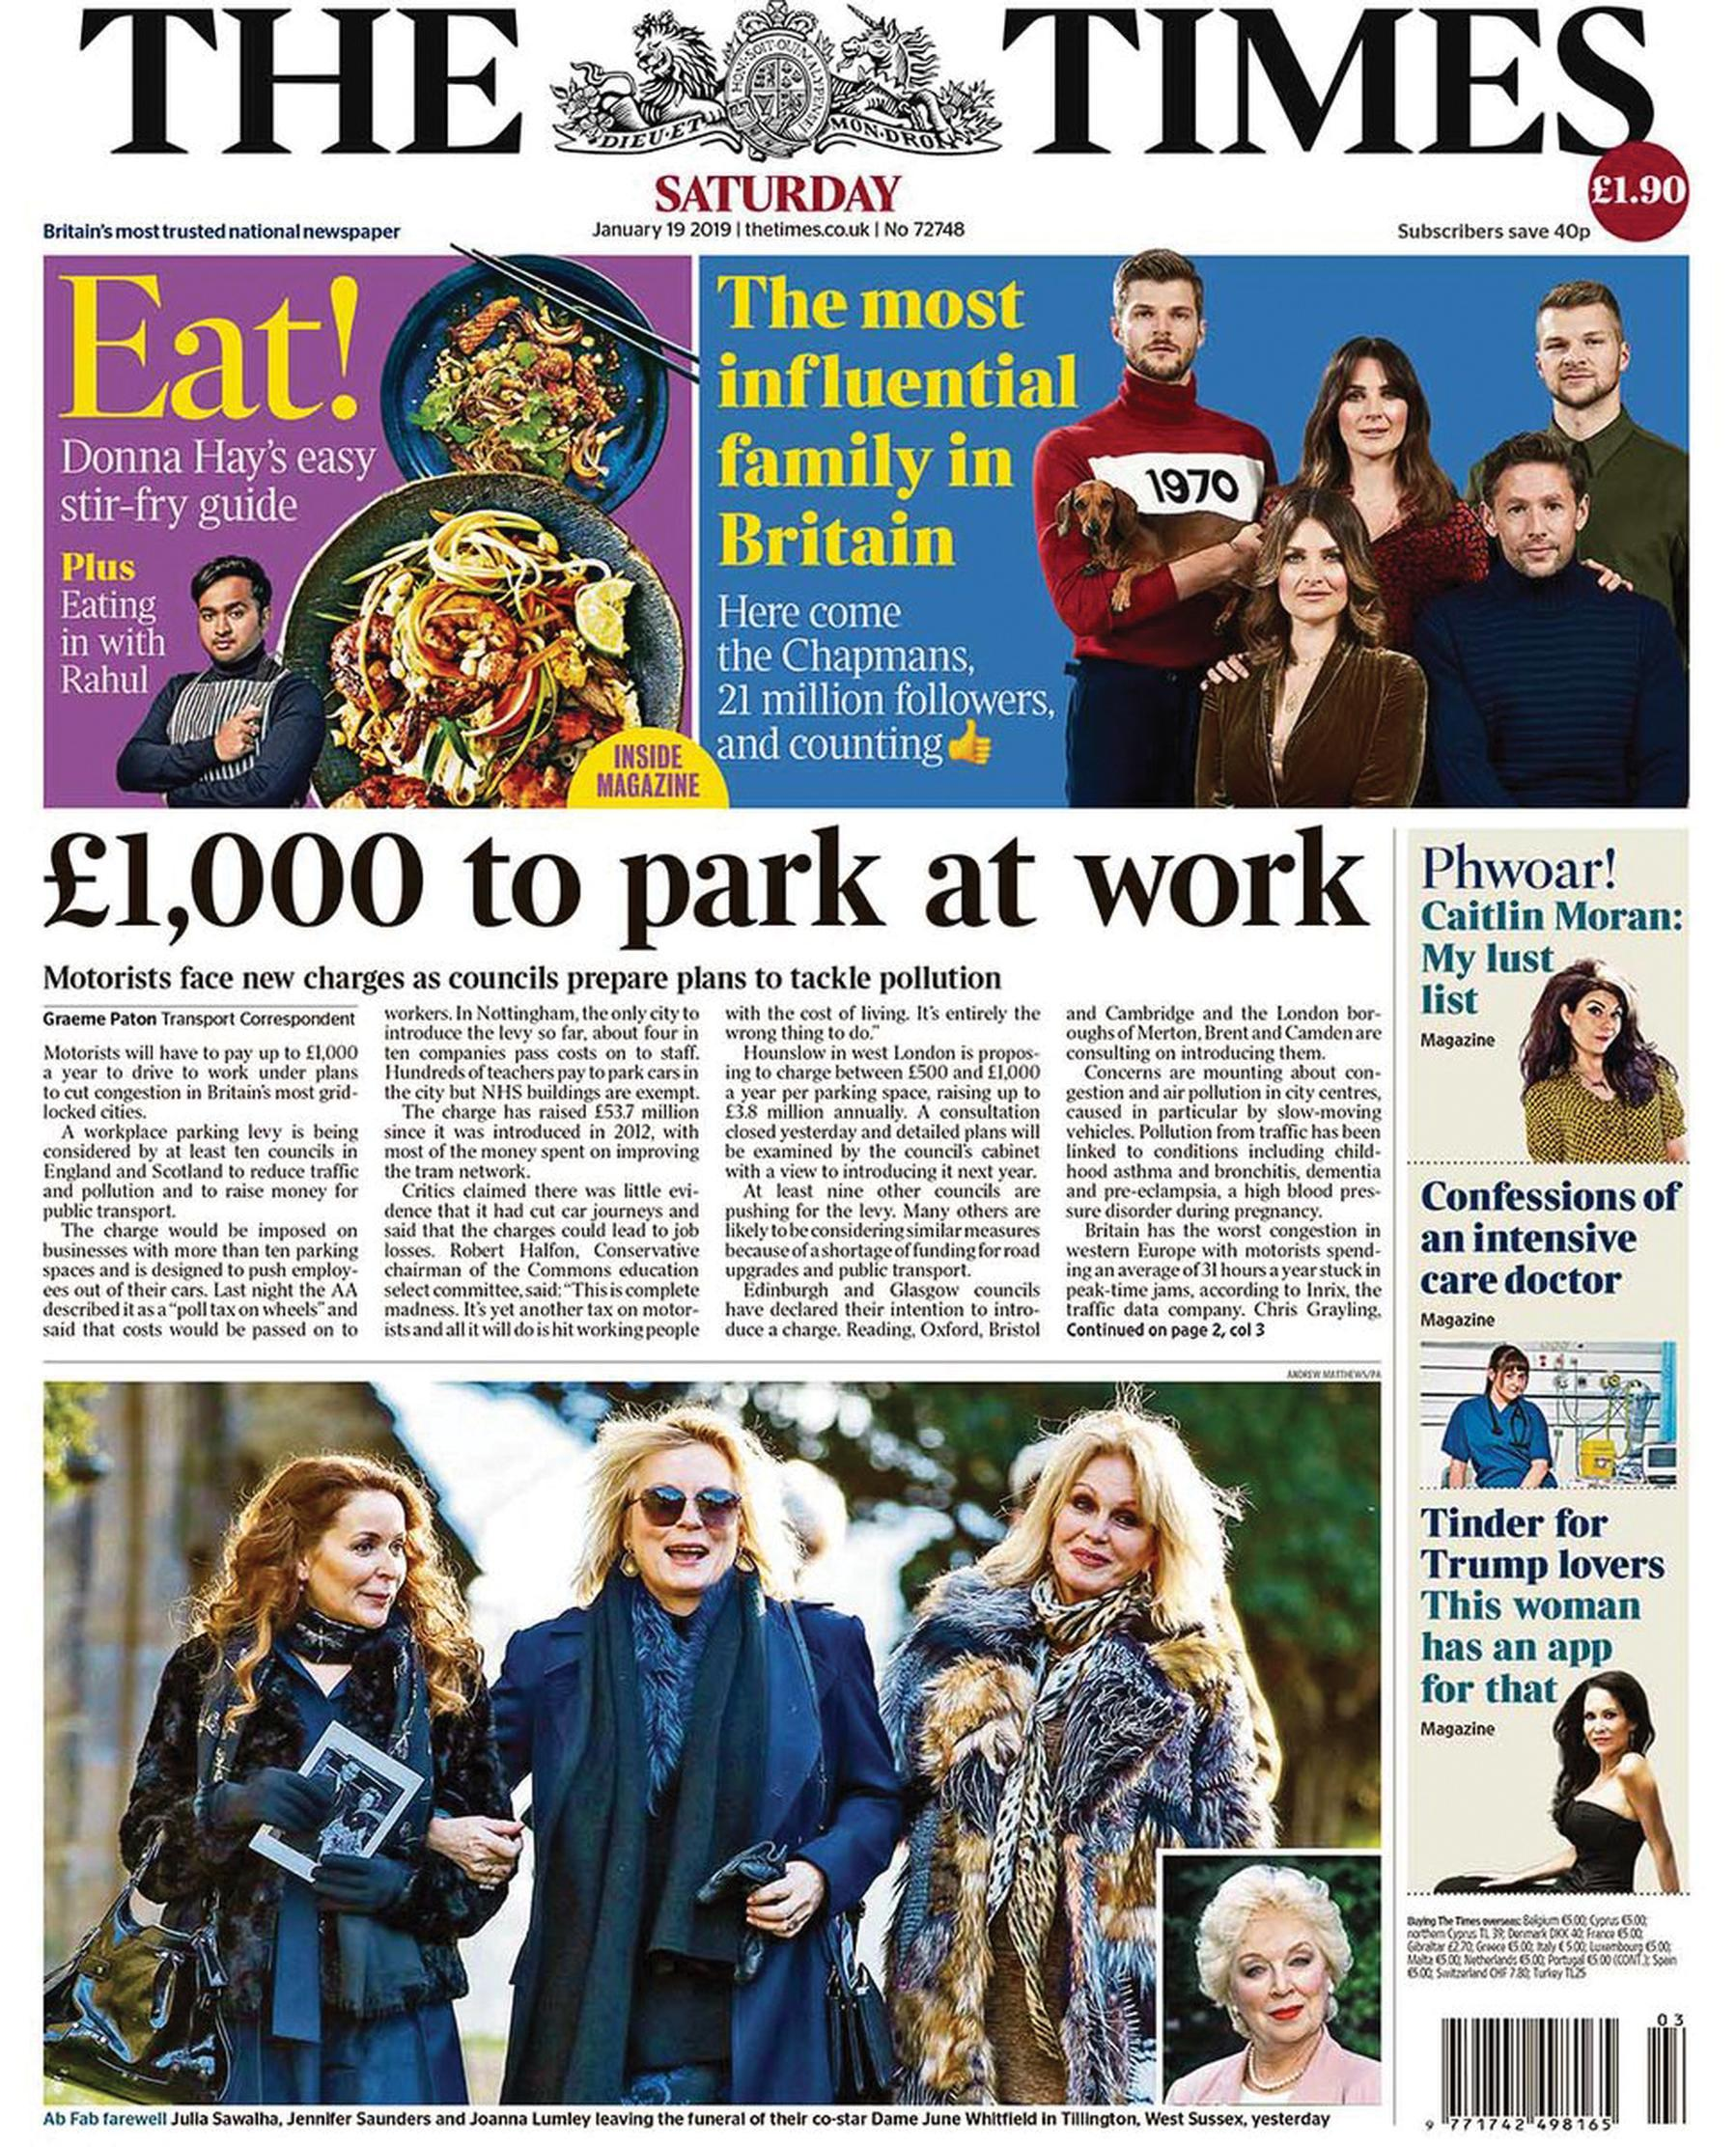 The Times put workplace parking levies on its front page on 19 January